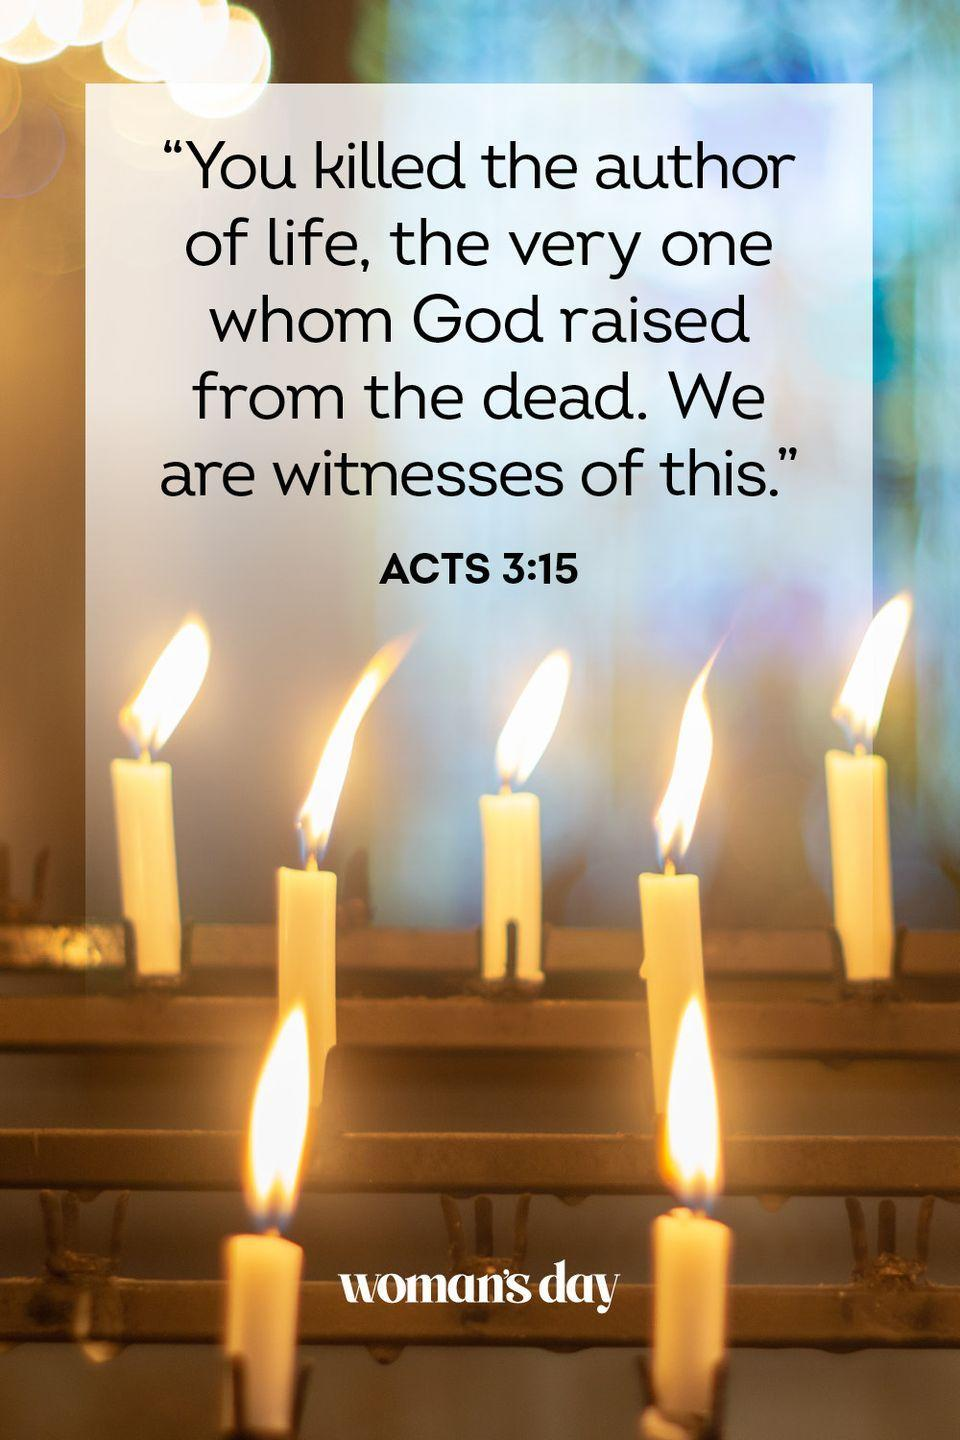 "<p>""You killed the author of life, the very one whom God raised from the dead. We are witnesses of this."" — Acts 3:15</p>"